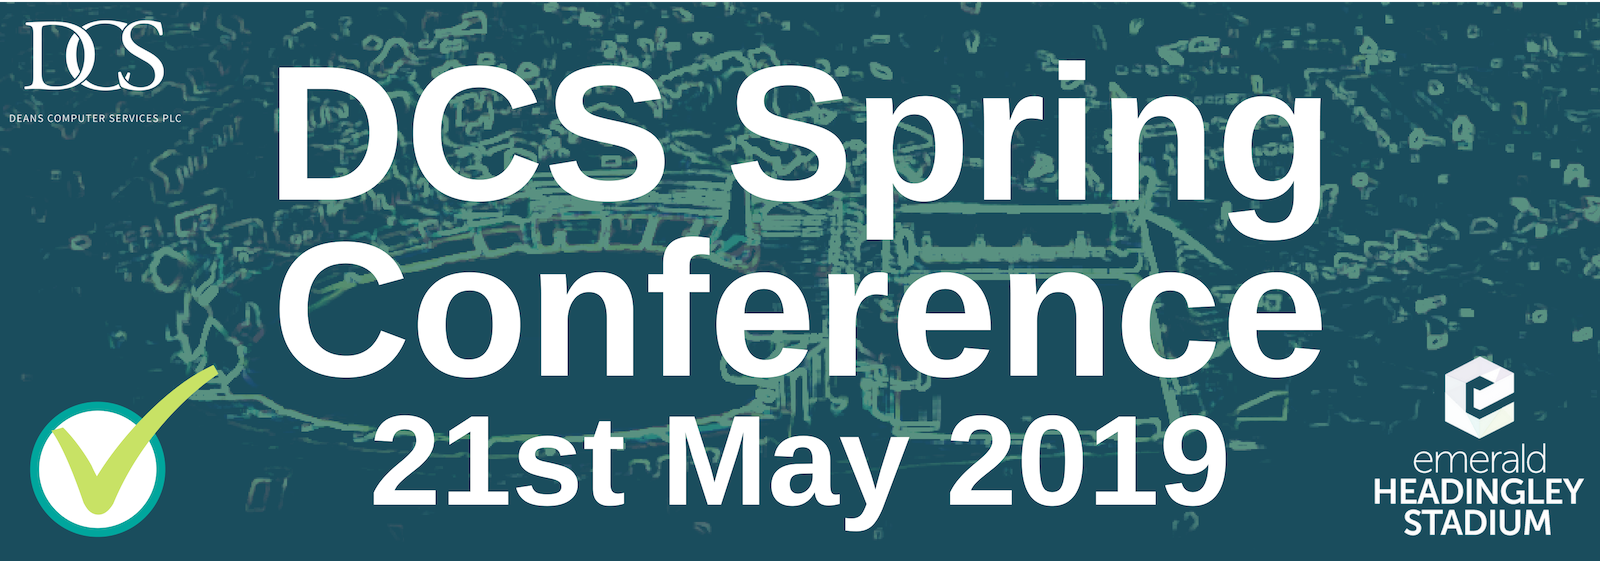 DCS Spring Conference 2019 Headingley